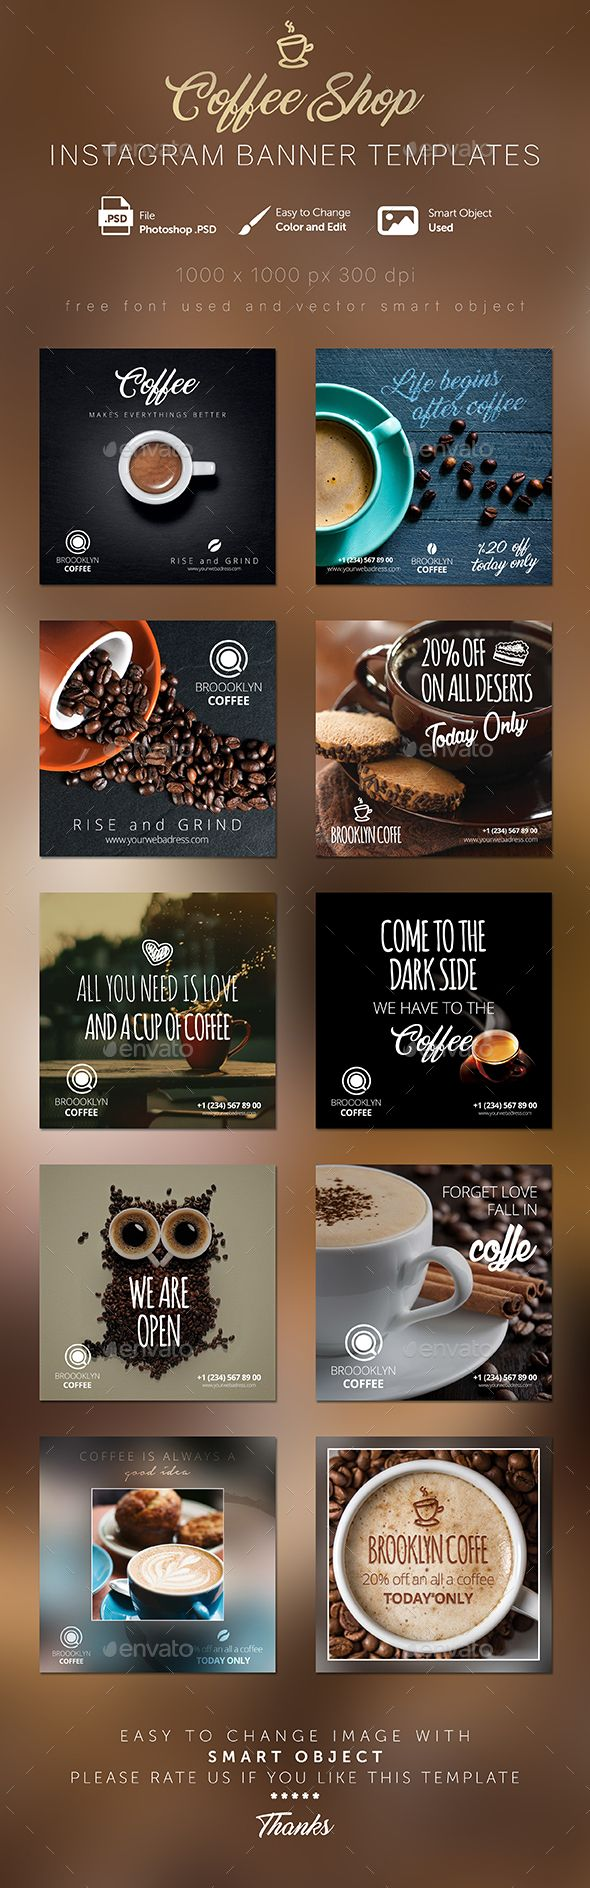 Coffee Shop Instagram Banner Templates